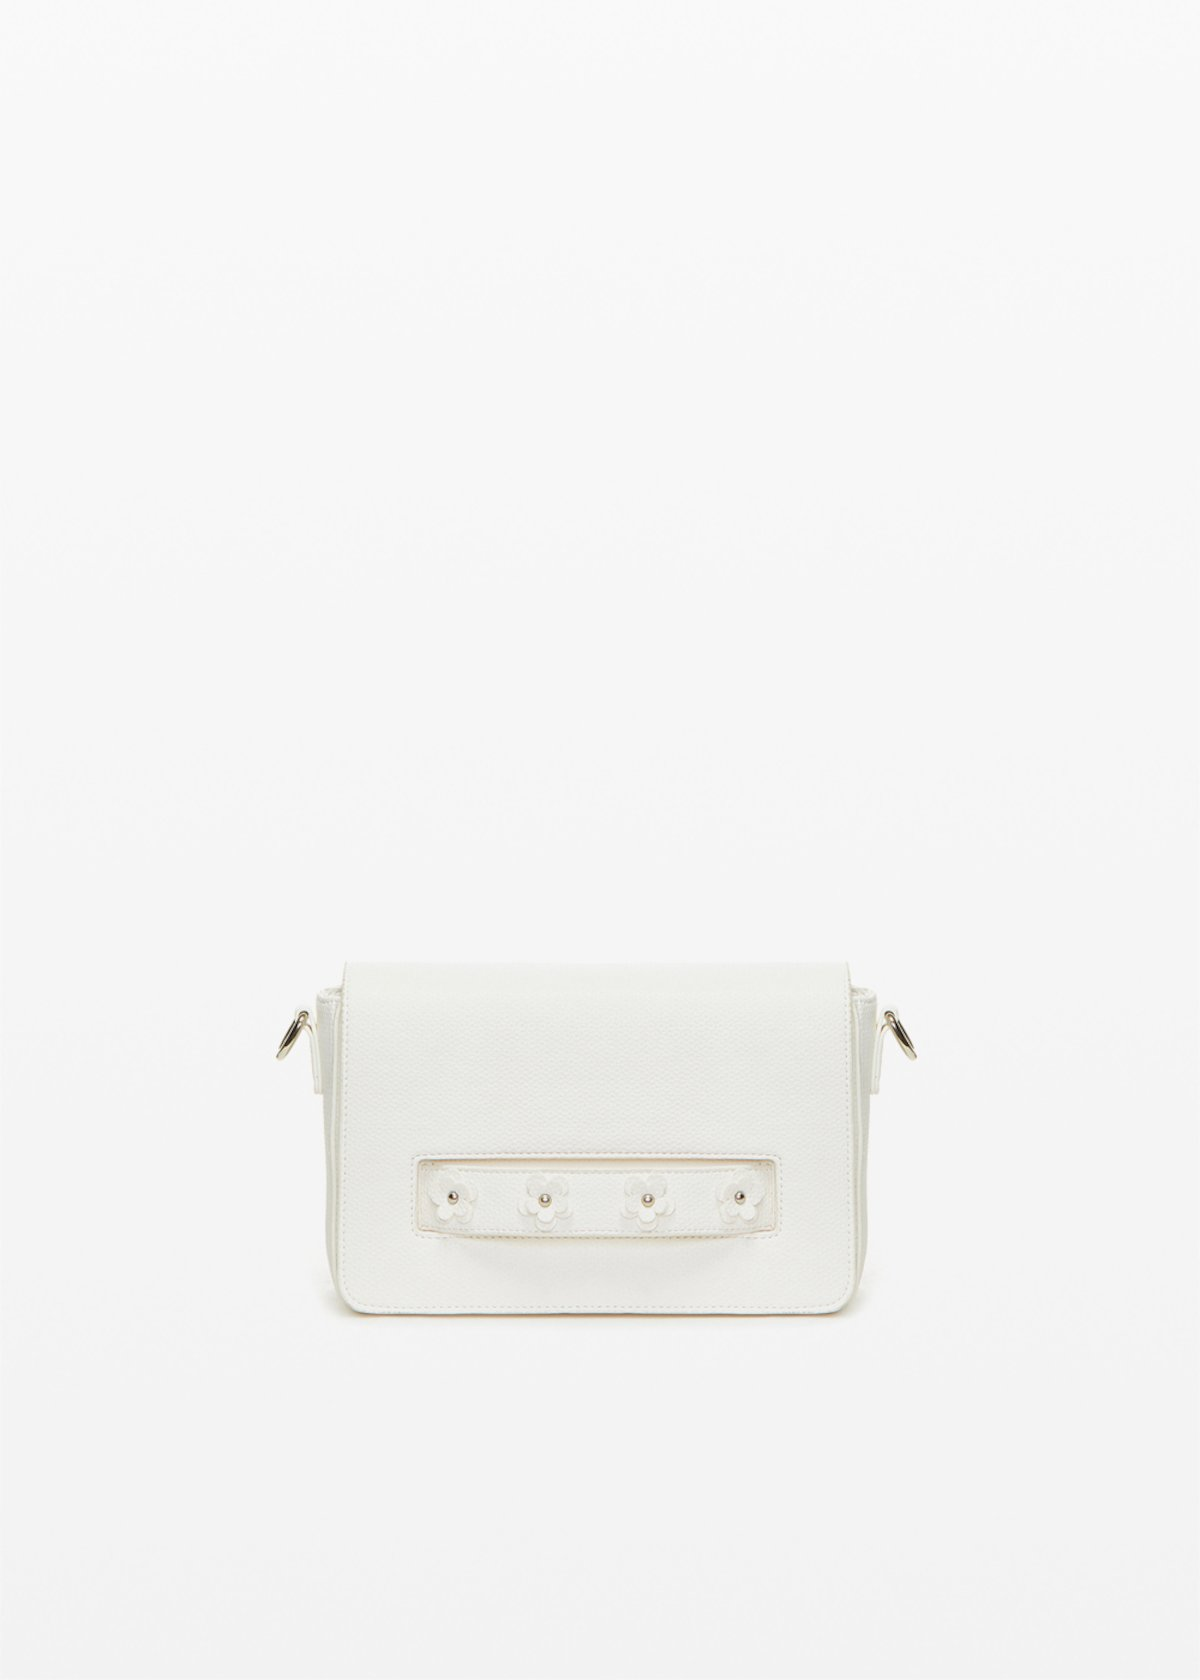 Bay faux leather crossbody bag with flowers detail - White - Woman